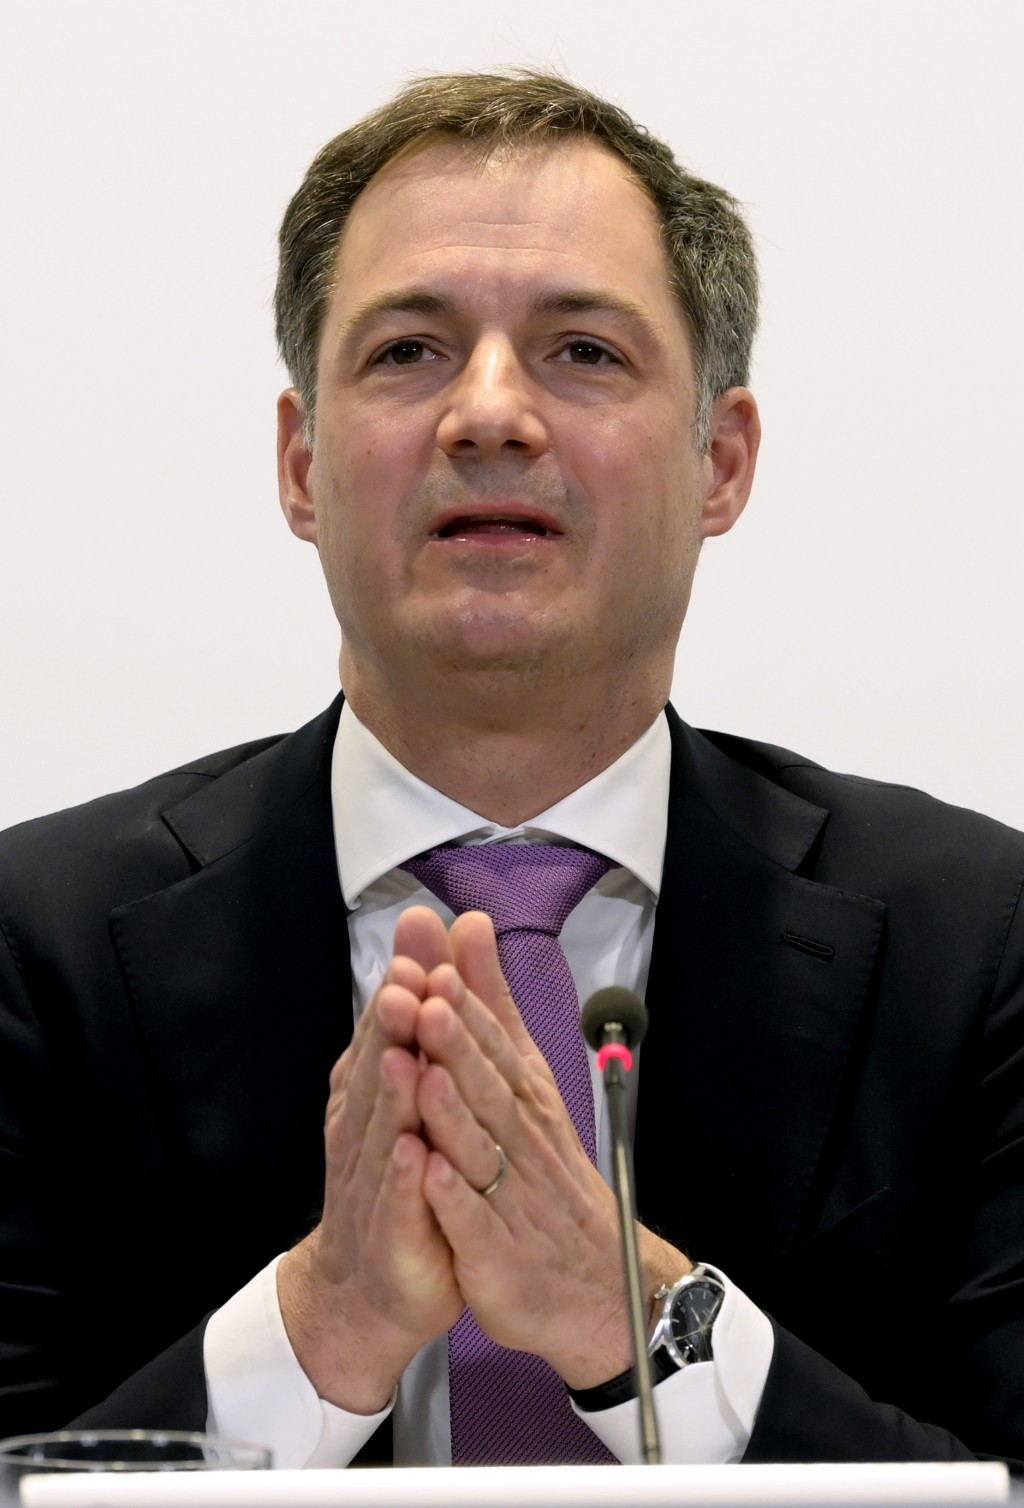 Belgium's Prime Minister Alexander De Croo speaks during a media conference at the prime minister's office in Brussels, Monday, Feb. 22, 2021. The gov...